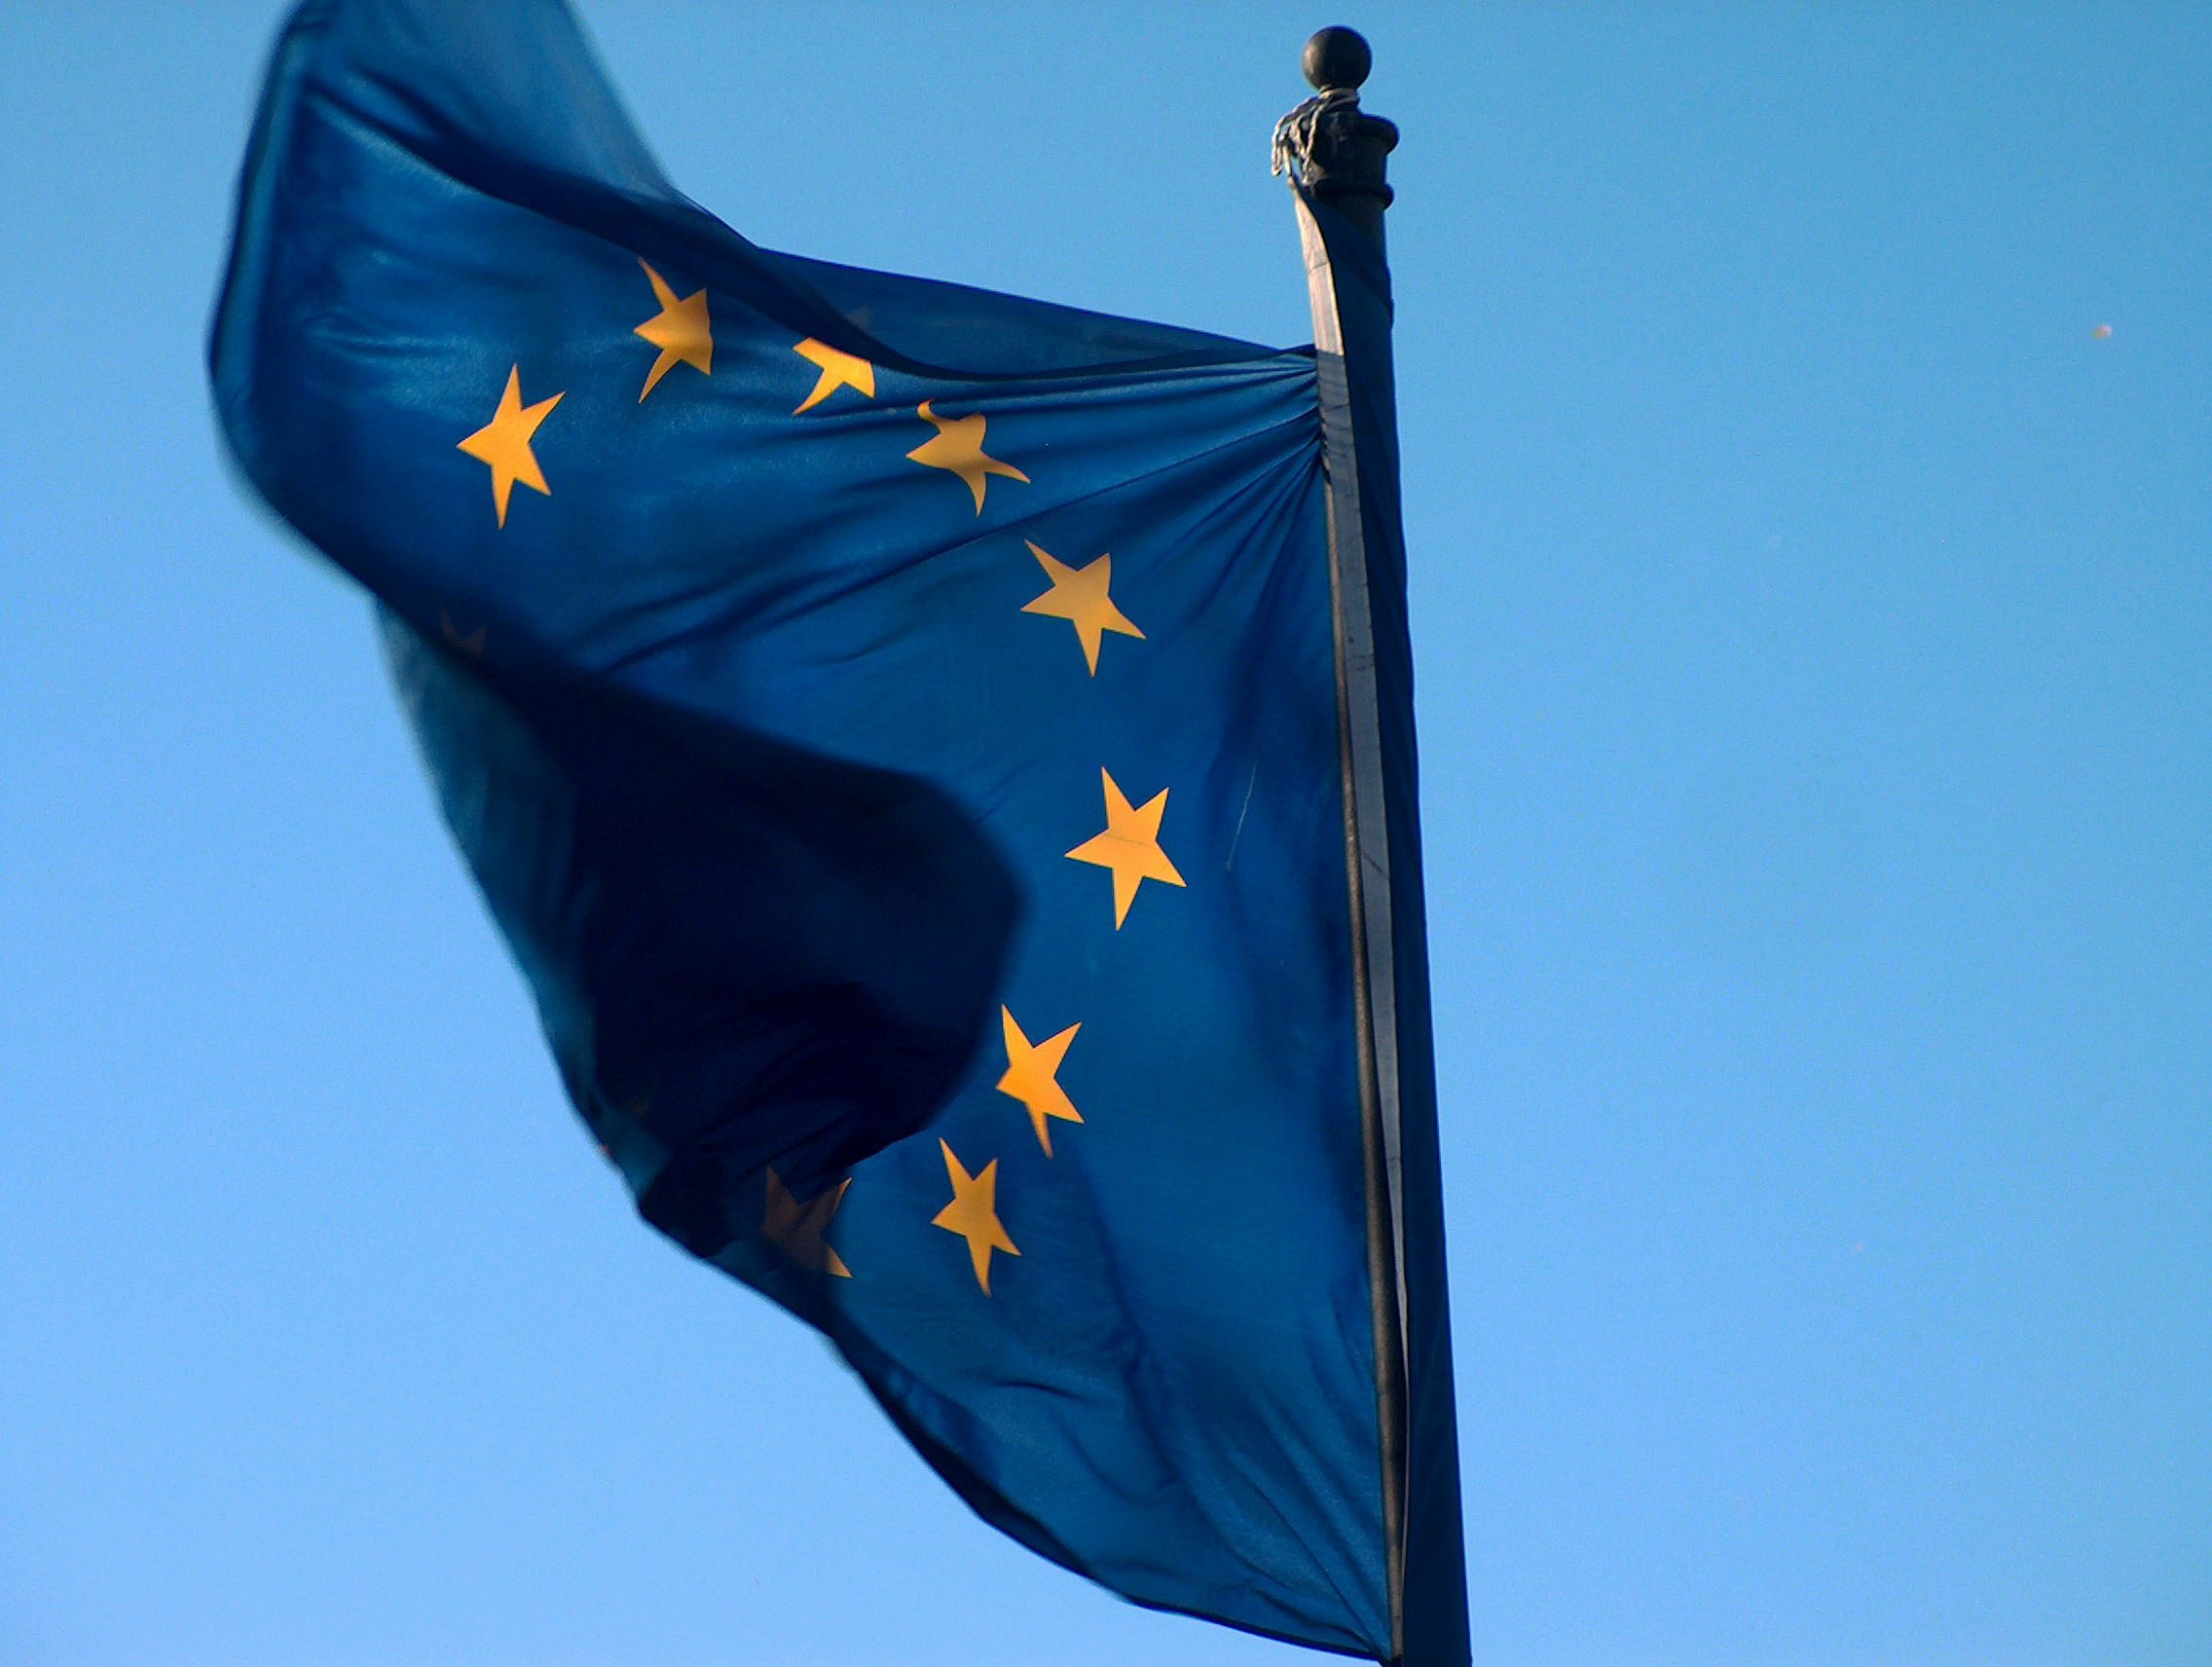 European private equity outperforms emerging markets